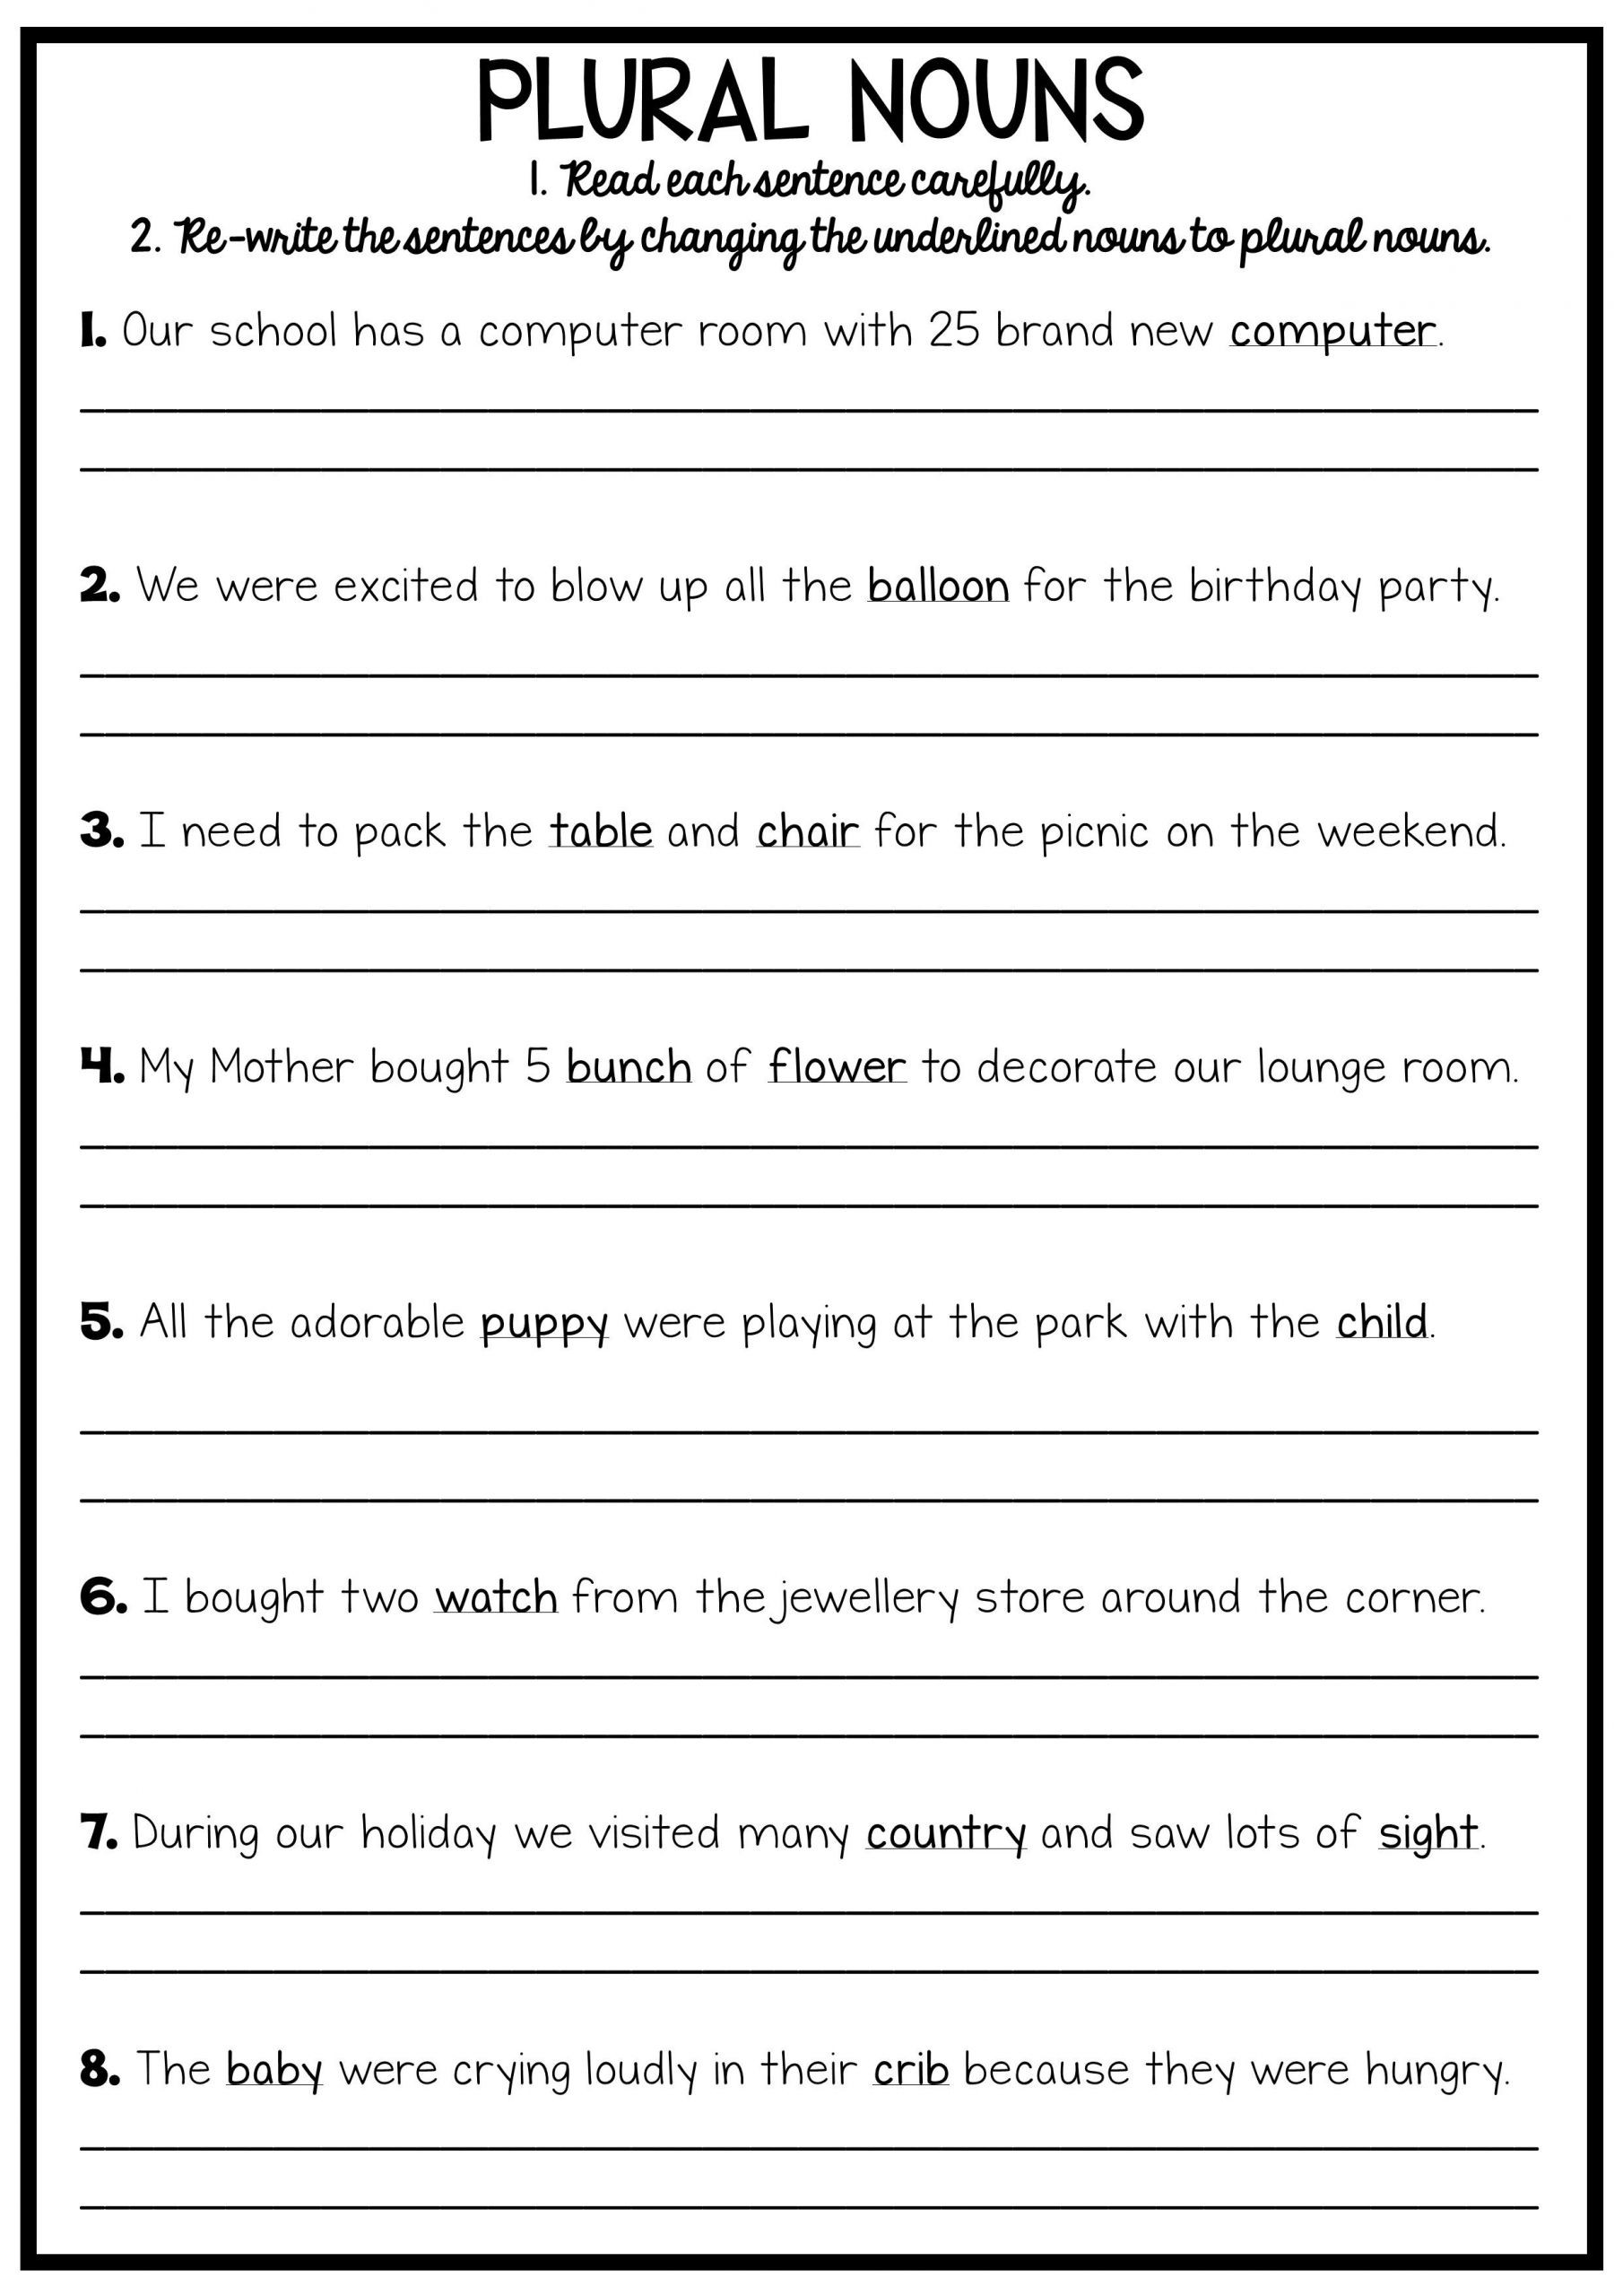 Third Grade Grammar Worksheets Grammar Worksheets 8th Grade English Printable Reading